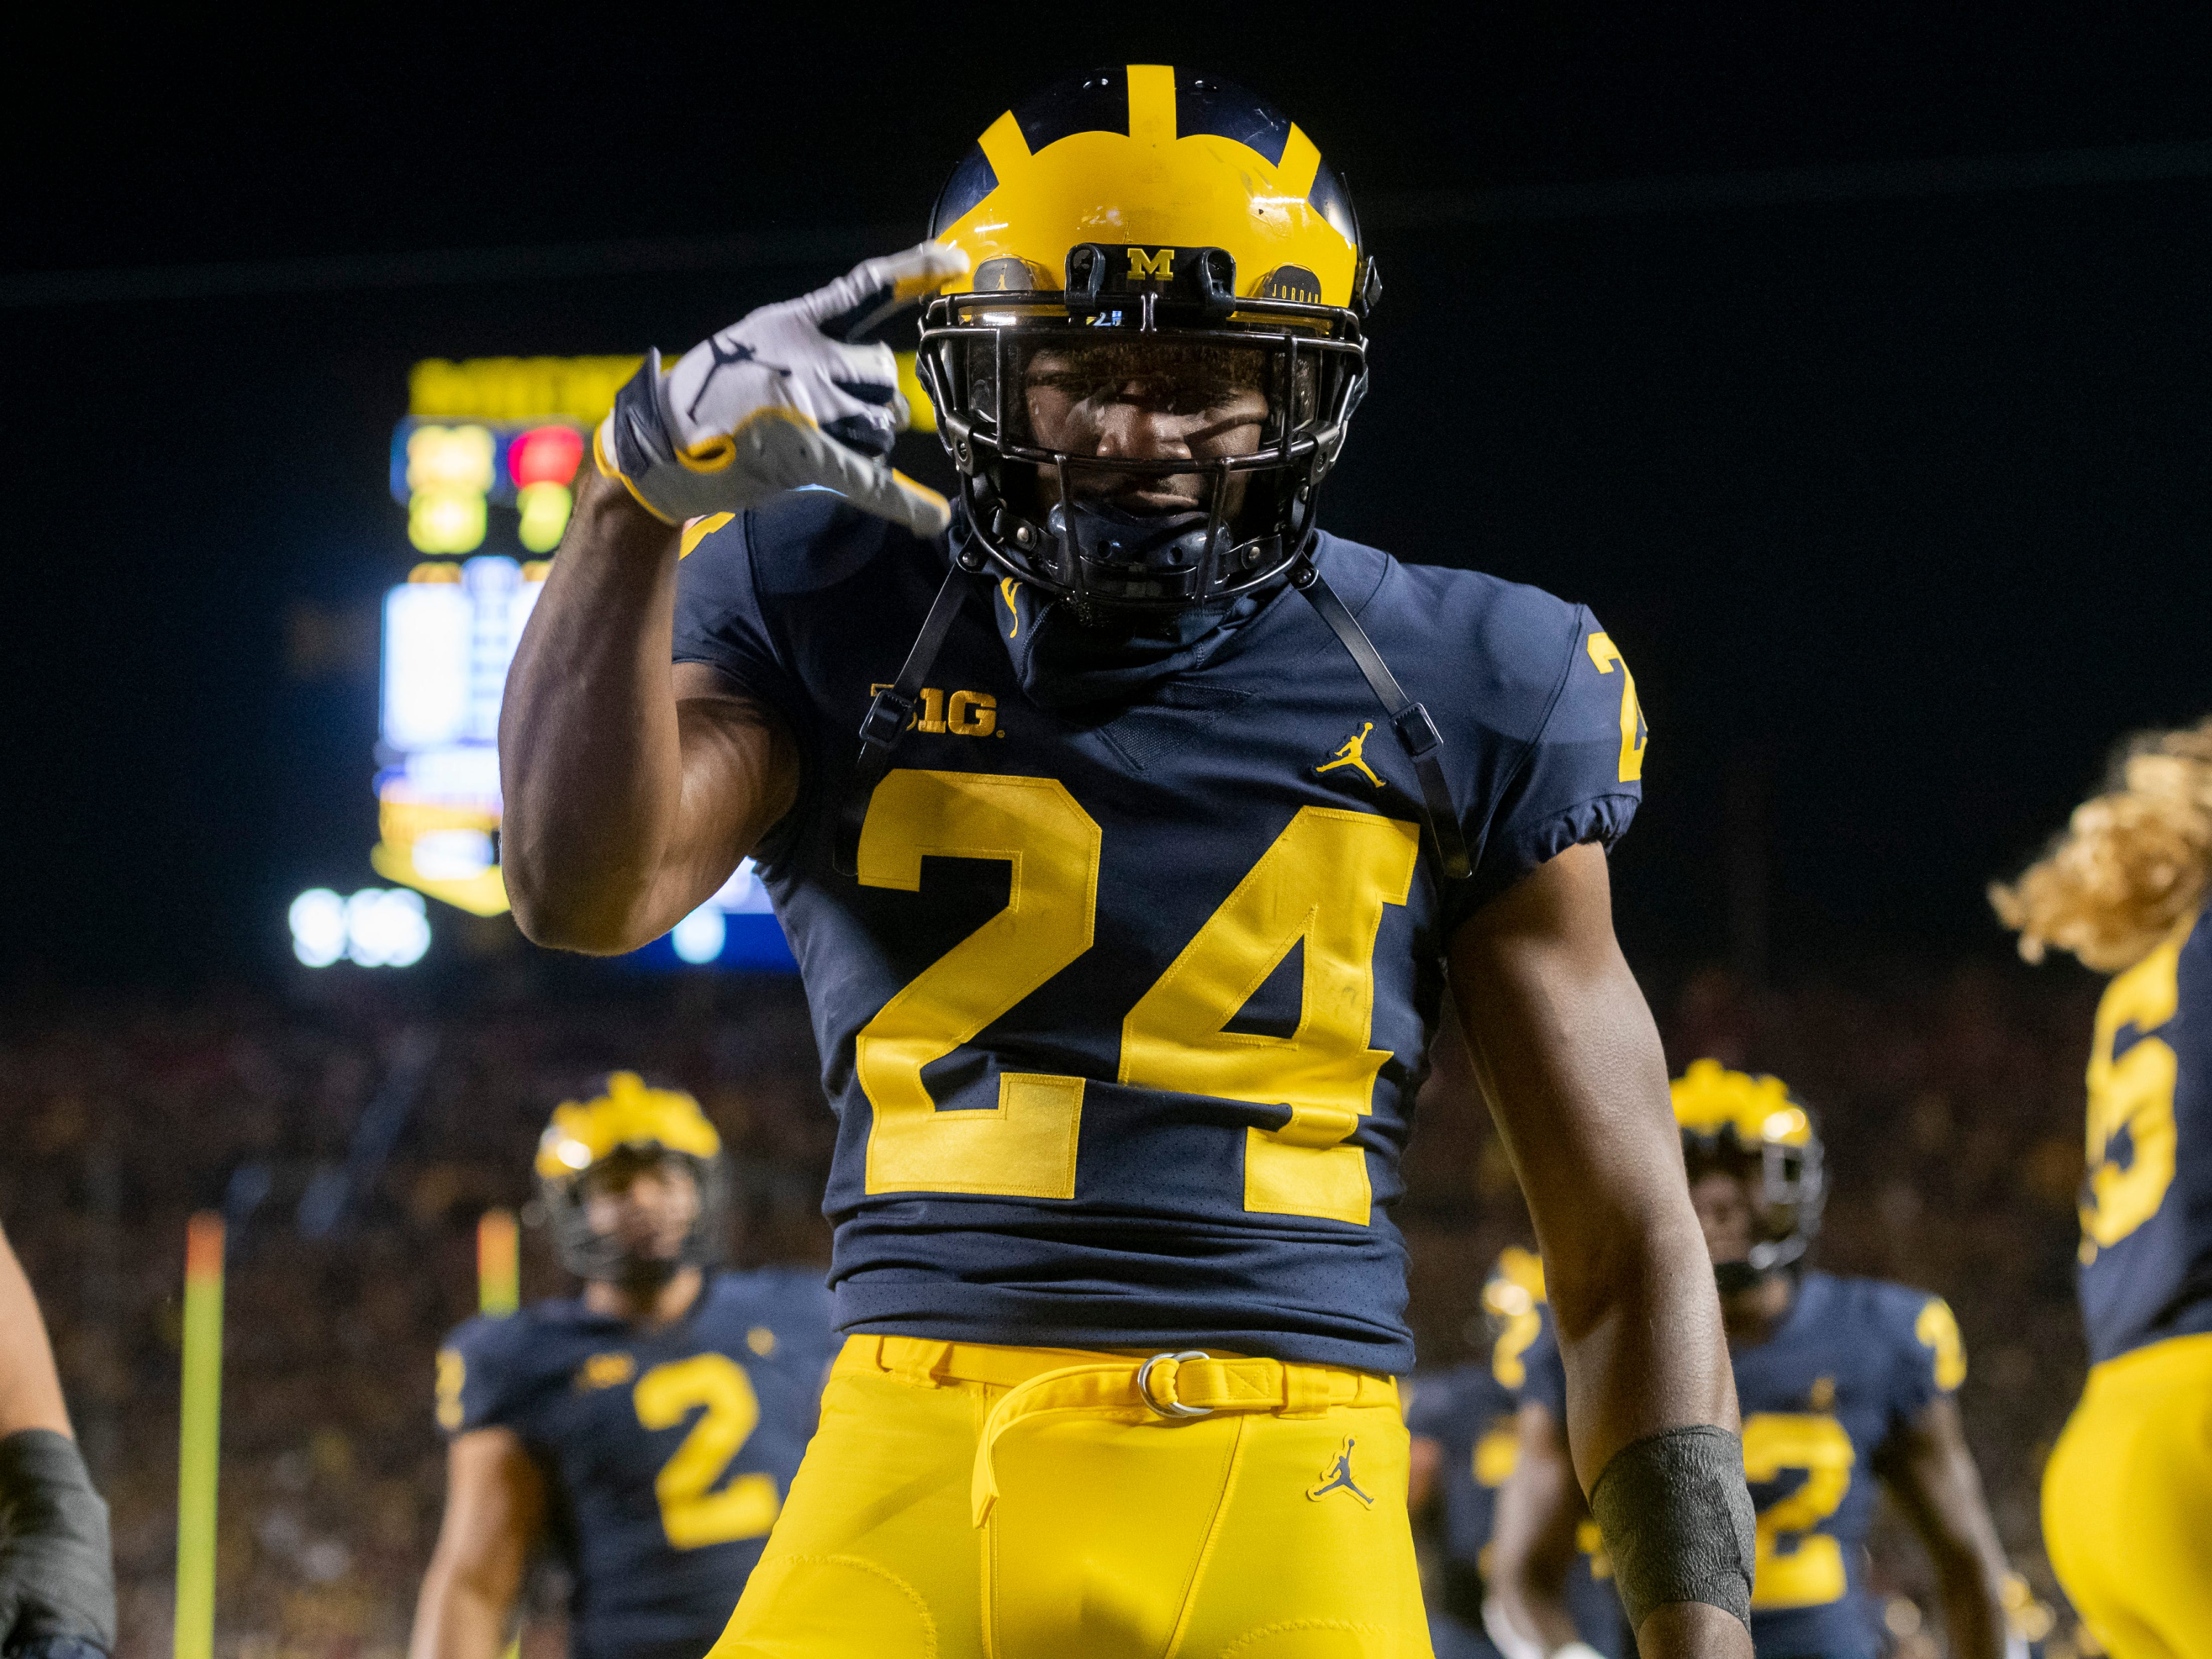 CORNERBACK: Lavert Hill – Hill considered heading to the NFL Draft after last season, but returns for his final year. He was All-Big Ten first team in 2018 and was a Jim Thorpe Award semifinalist. Hill had five pass breakups and one interception.